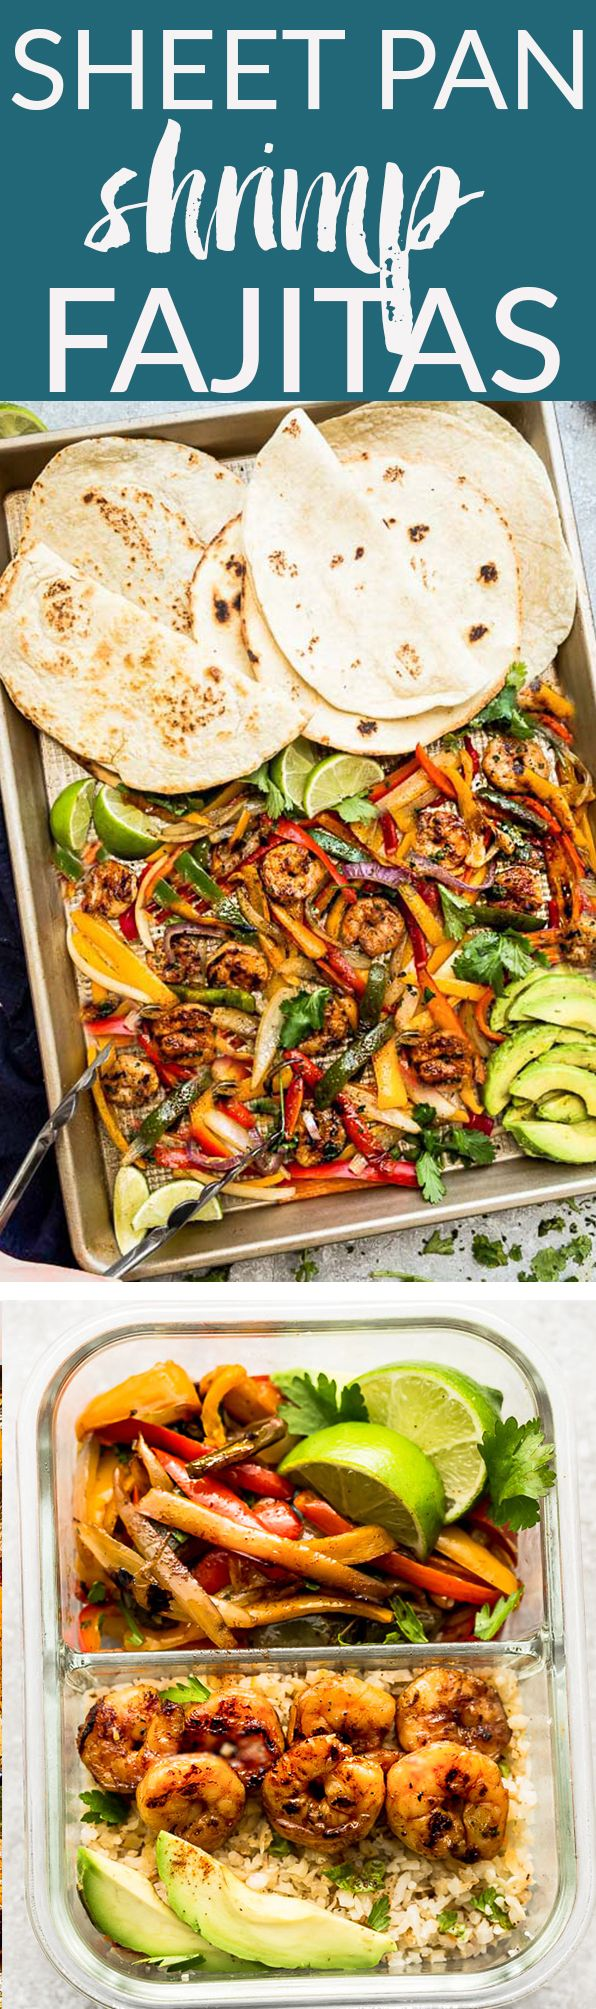 Sheet Pan Shrimp Fajitas - the perfect easy and healthy one pan meal for busy weeknights. Best of all, bursting with chili lime flavors & served with low carb tortillas. Ready in just 20 minutes and easy to customize with chicken or steak. Great for Sunday meal prep for packing in work or school lunches. Serve with low carb tortillas, salad or cauliflower rice for a low carb version. #mealprep #fajitas #shrimp #lent #mexican #healthy #lowcarb #keto